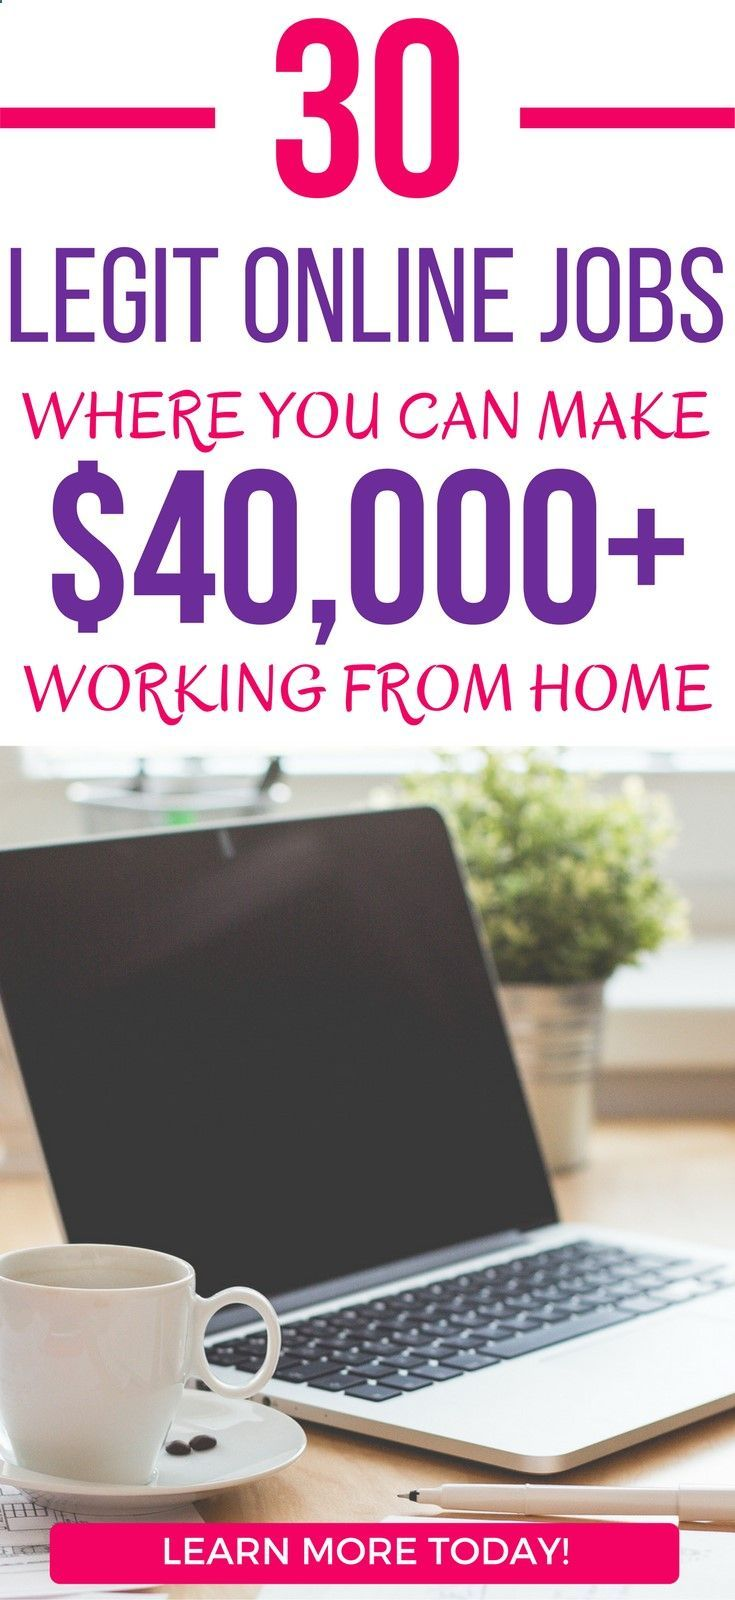 33 Legit Online Jobs Where You Can Earn $40,000 From Home legit work from home jobs 2018 | legit work from home jobs | legitimate work from home jobs 2018 | legit ways to make extra money | legit ways to make money online #sidehustles #blogging #makemoneyonline